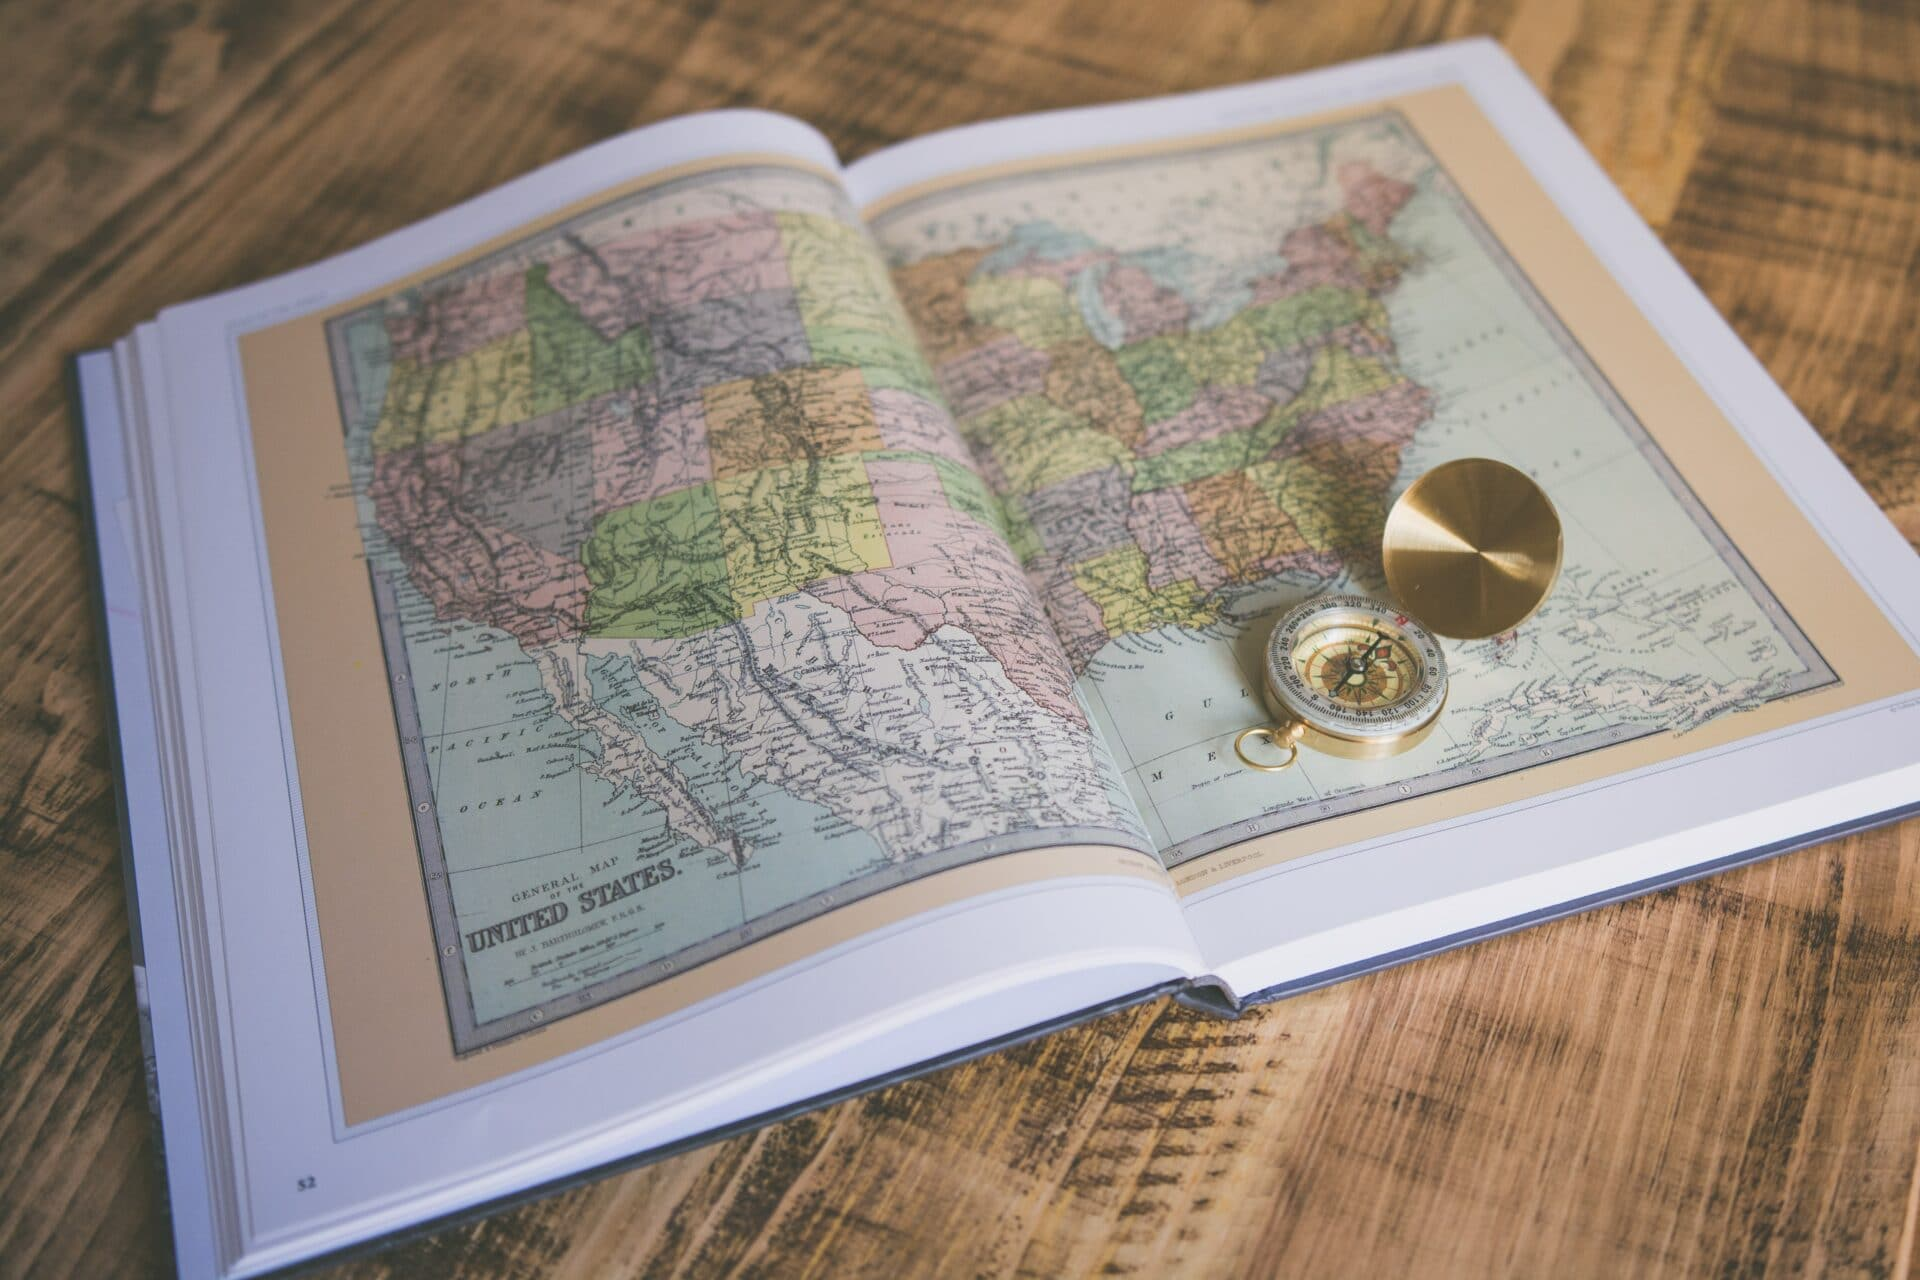 Book of maps for offline trip planning